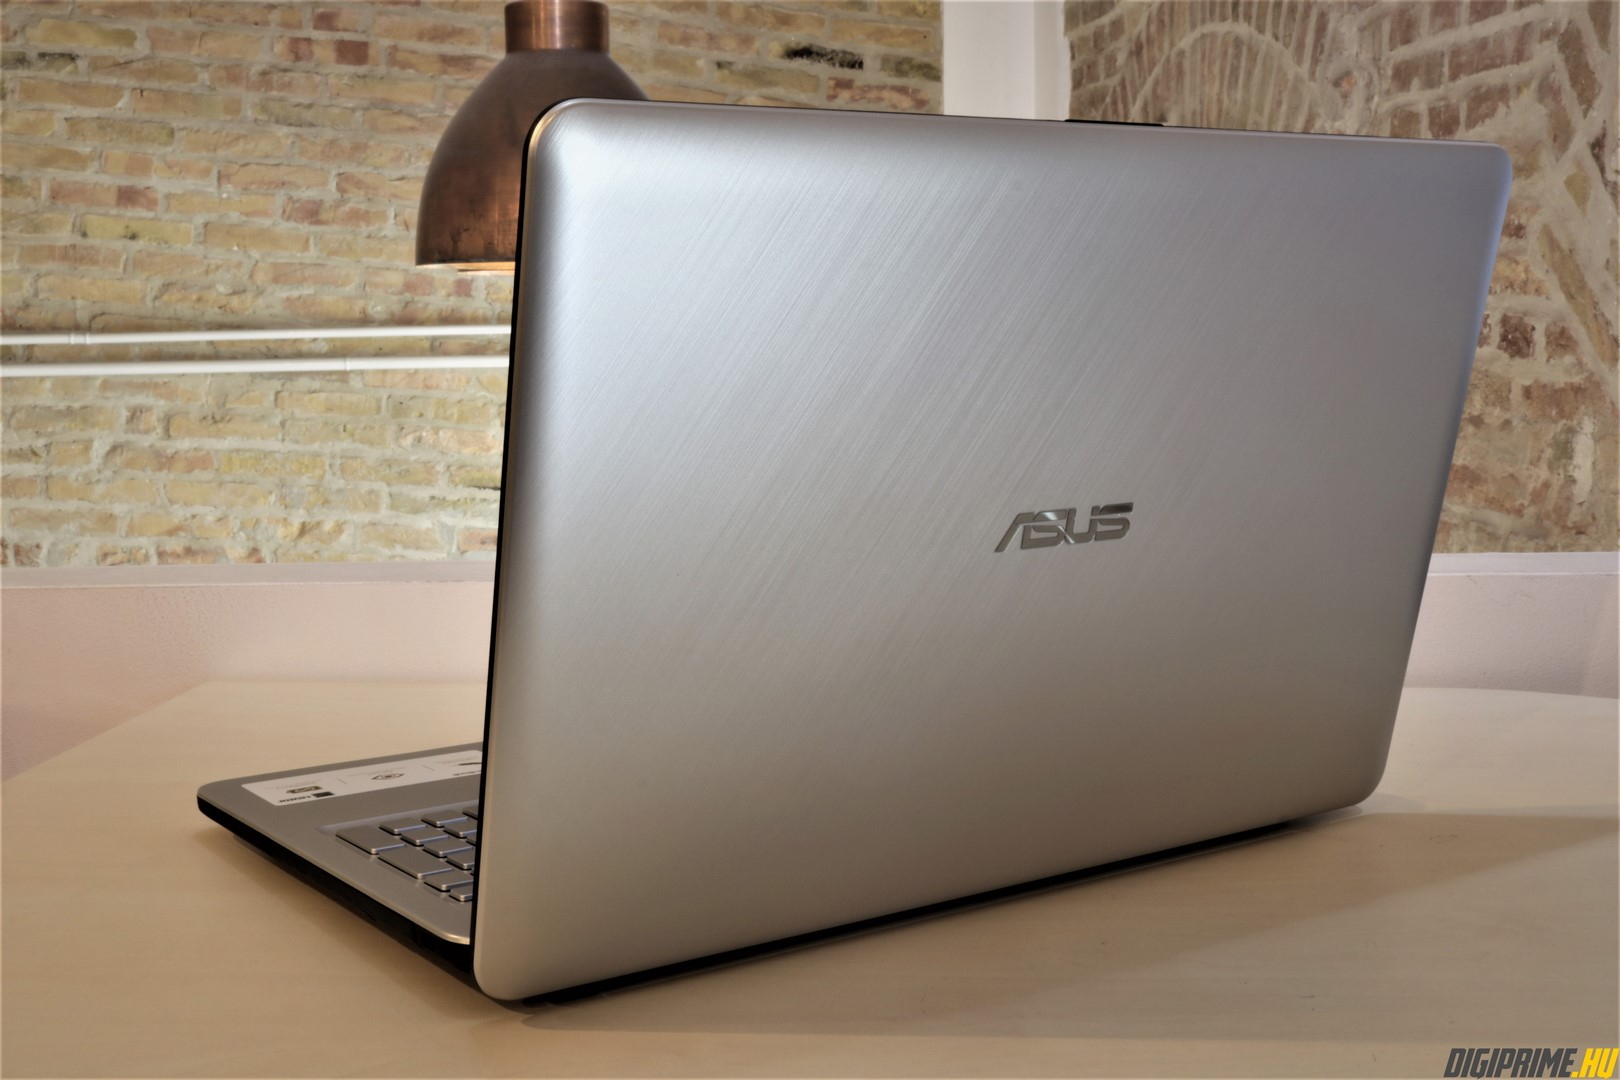 asus x543 11 digiprime.hu